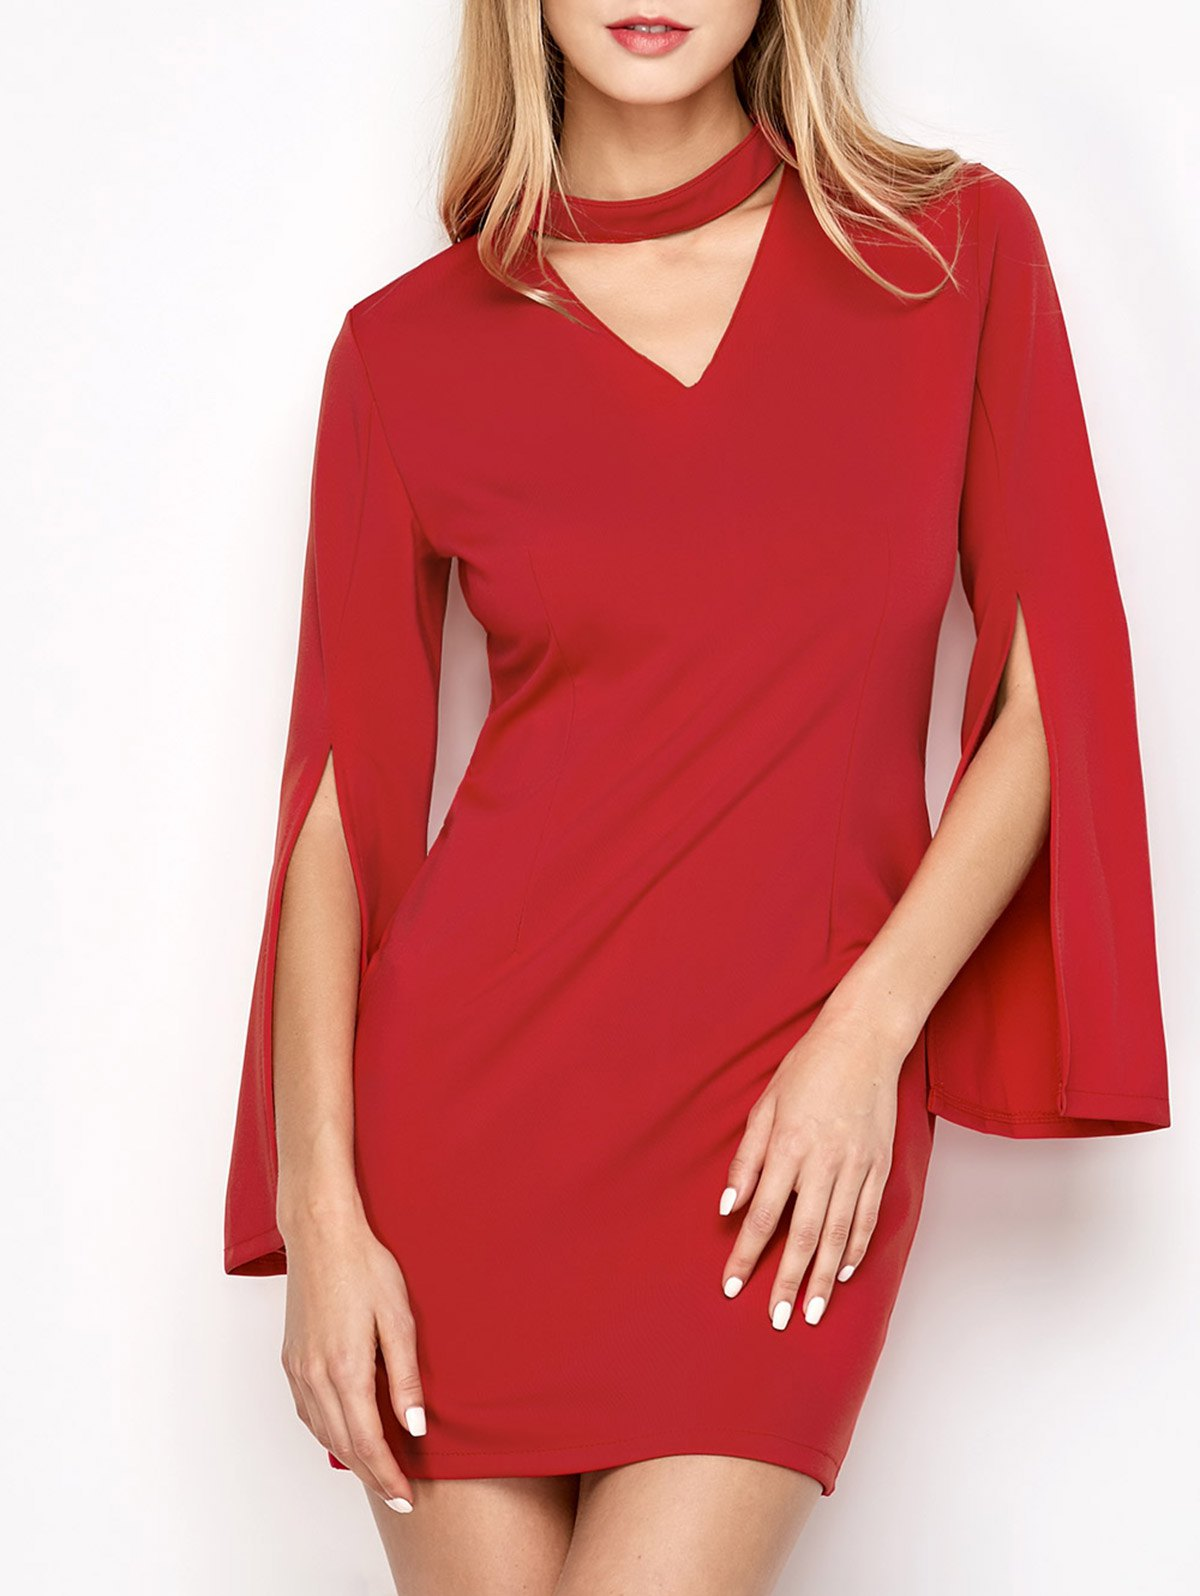 Bell Sleeve Choker Bodycon Dress - Red